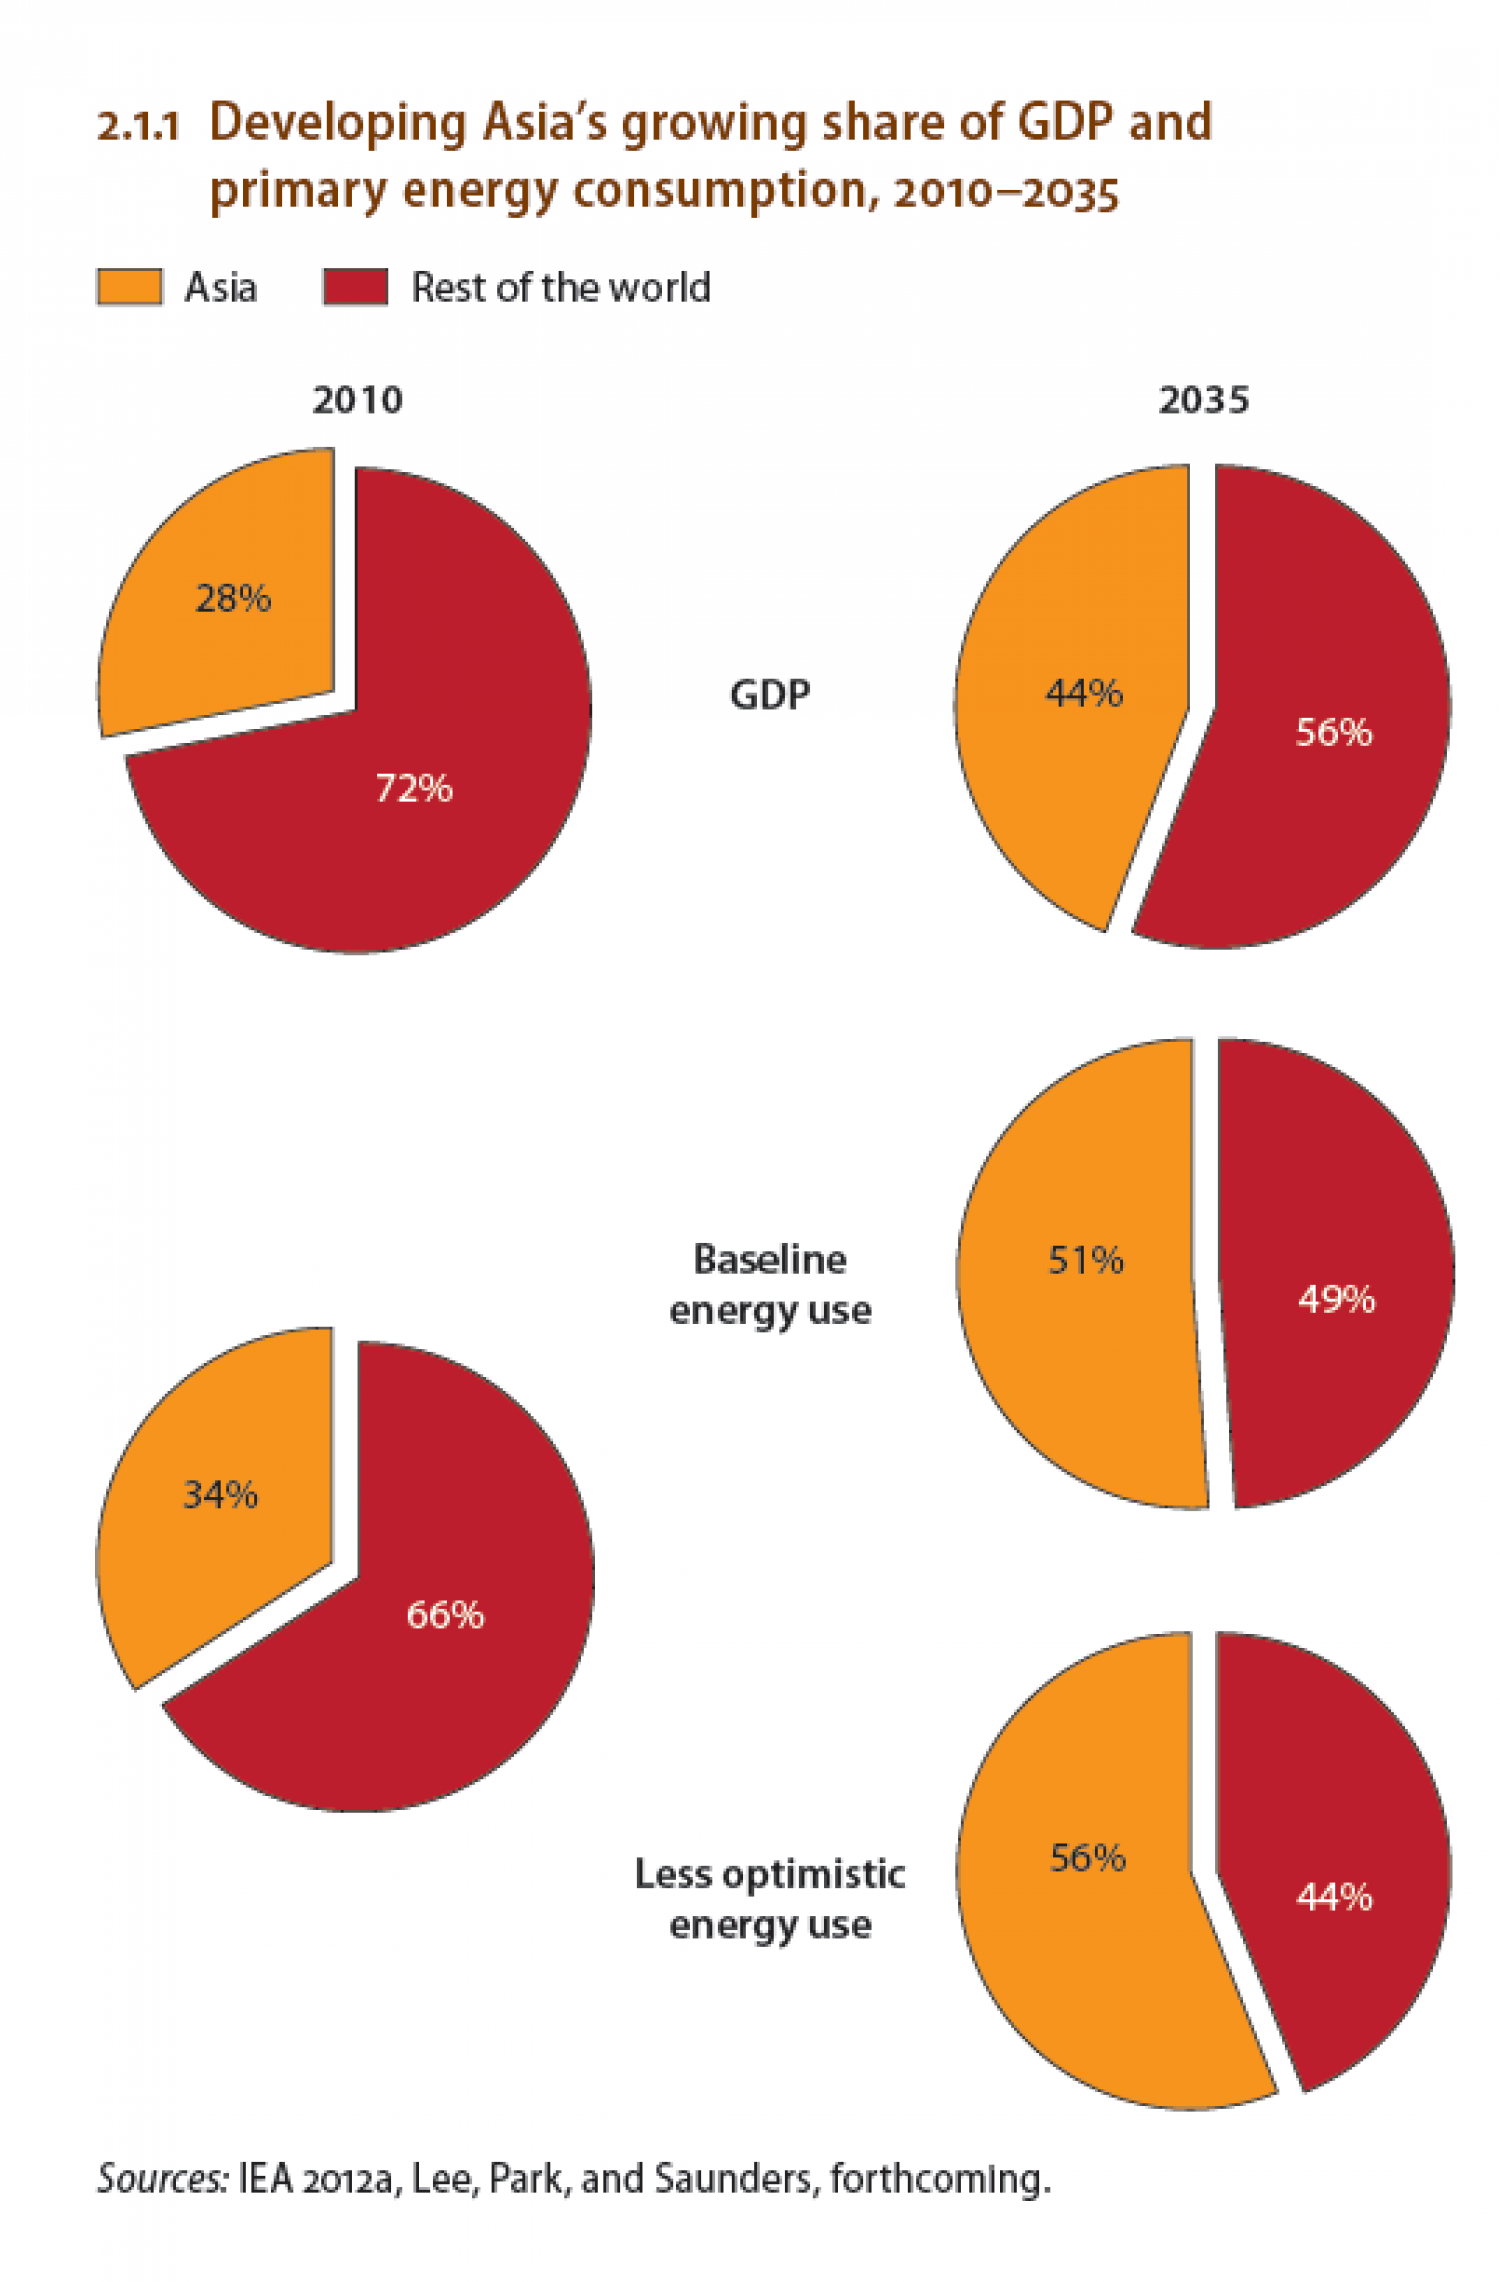 Developing Asia's growing share of GDP and primary energy consumption, 2010–2035 Infographic